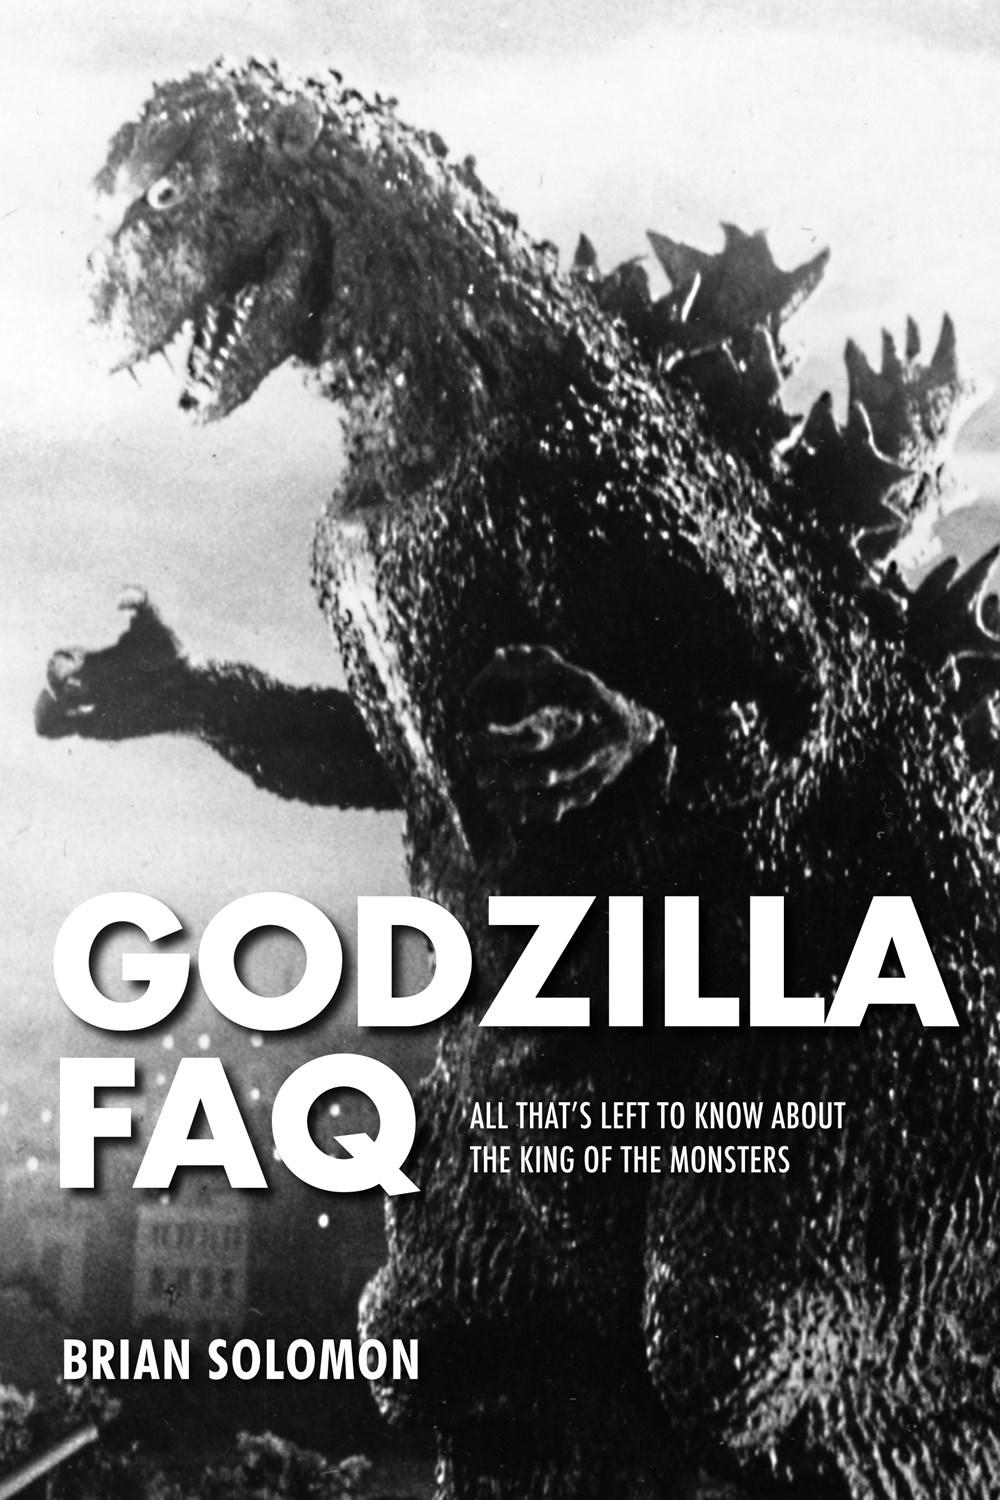 You Can Find Out Everything About The King of the Kaiju In 'Godzilla FAQ!'